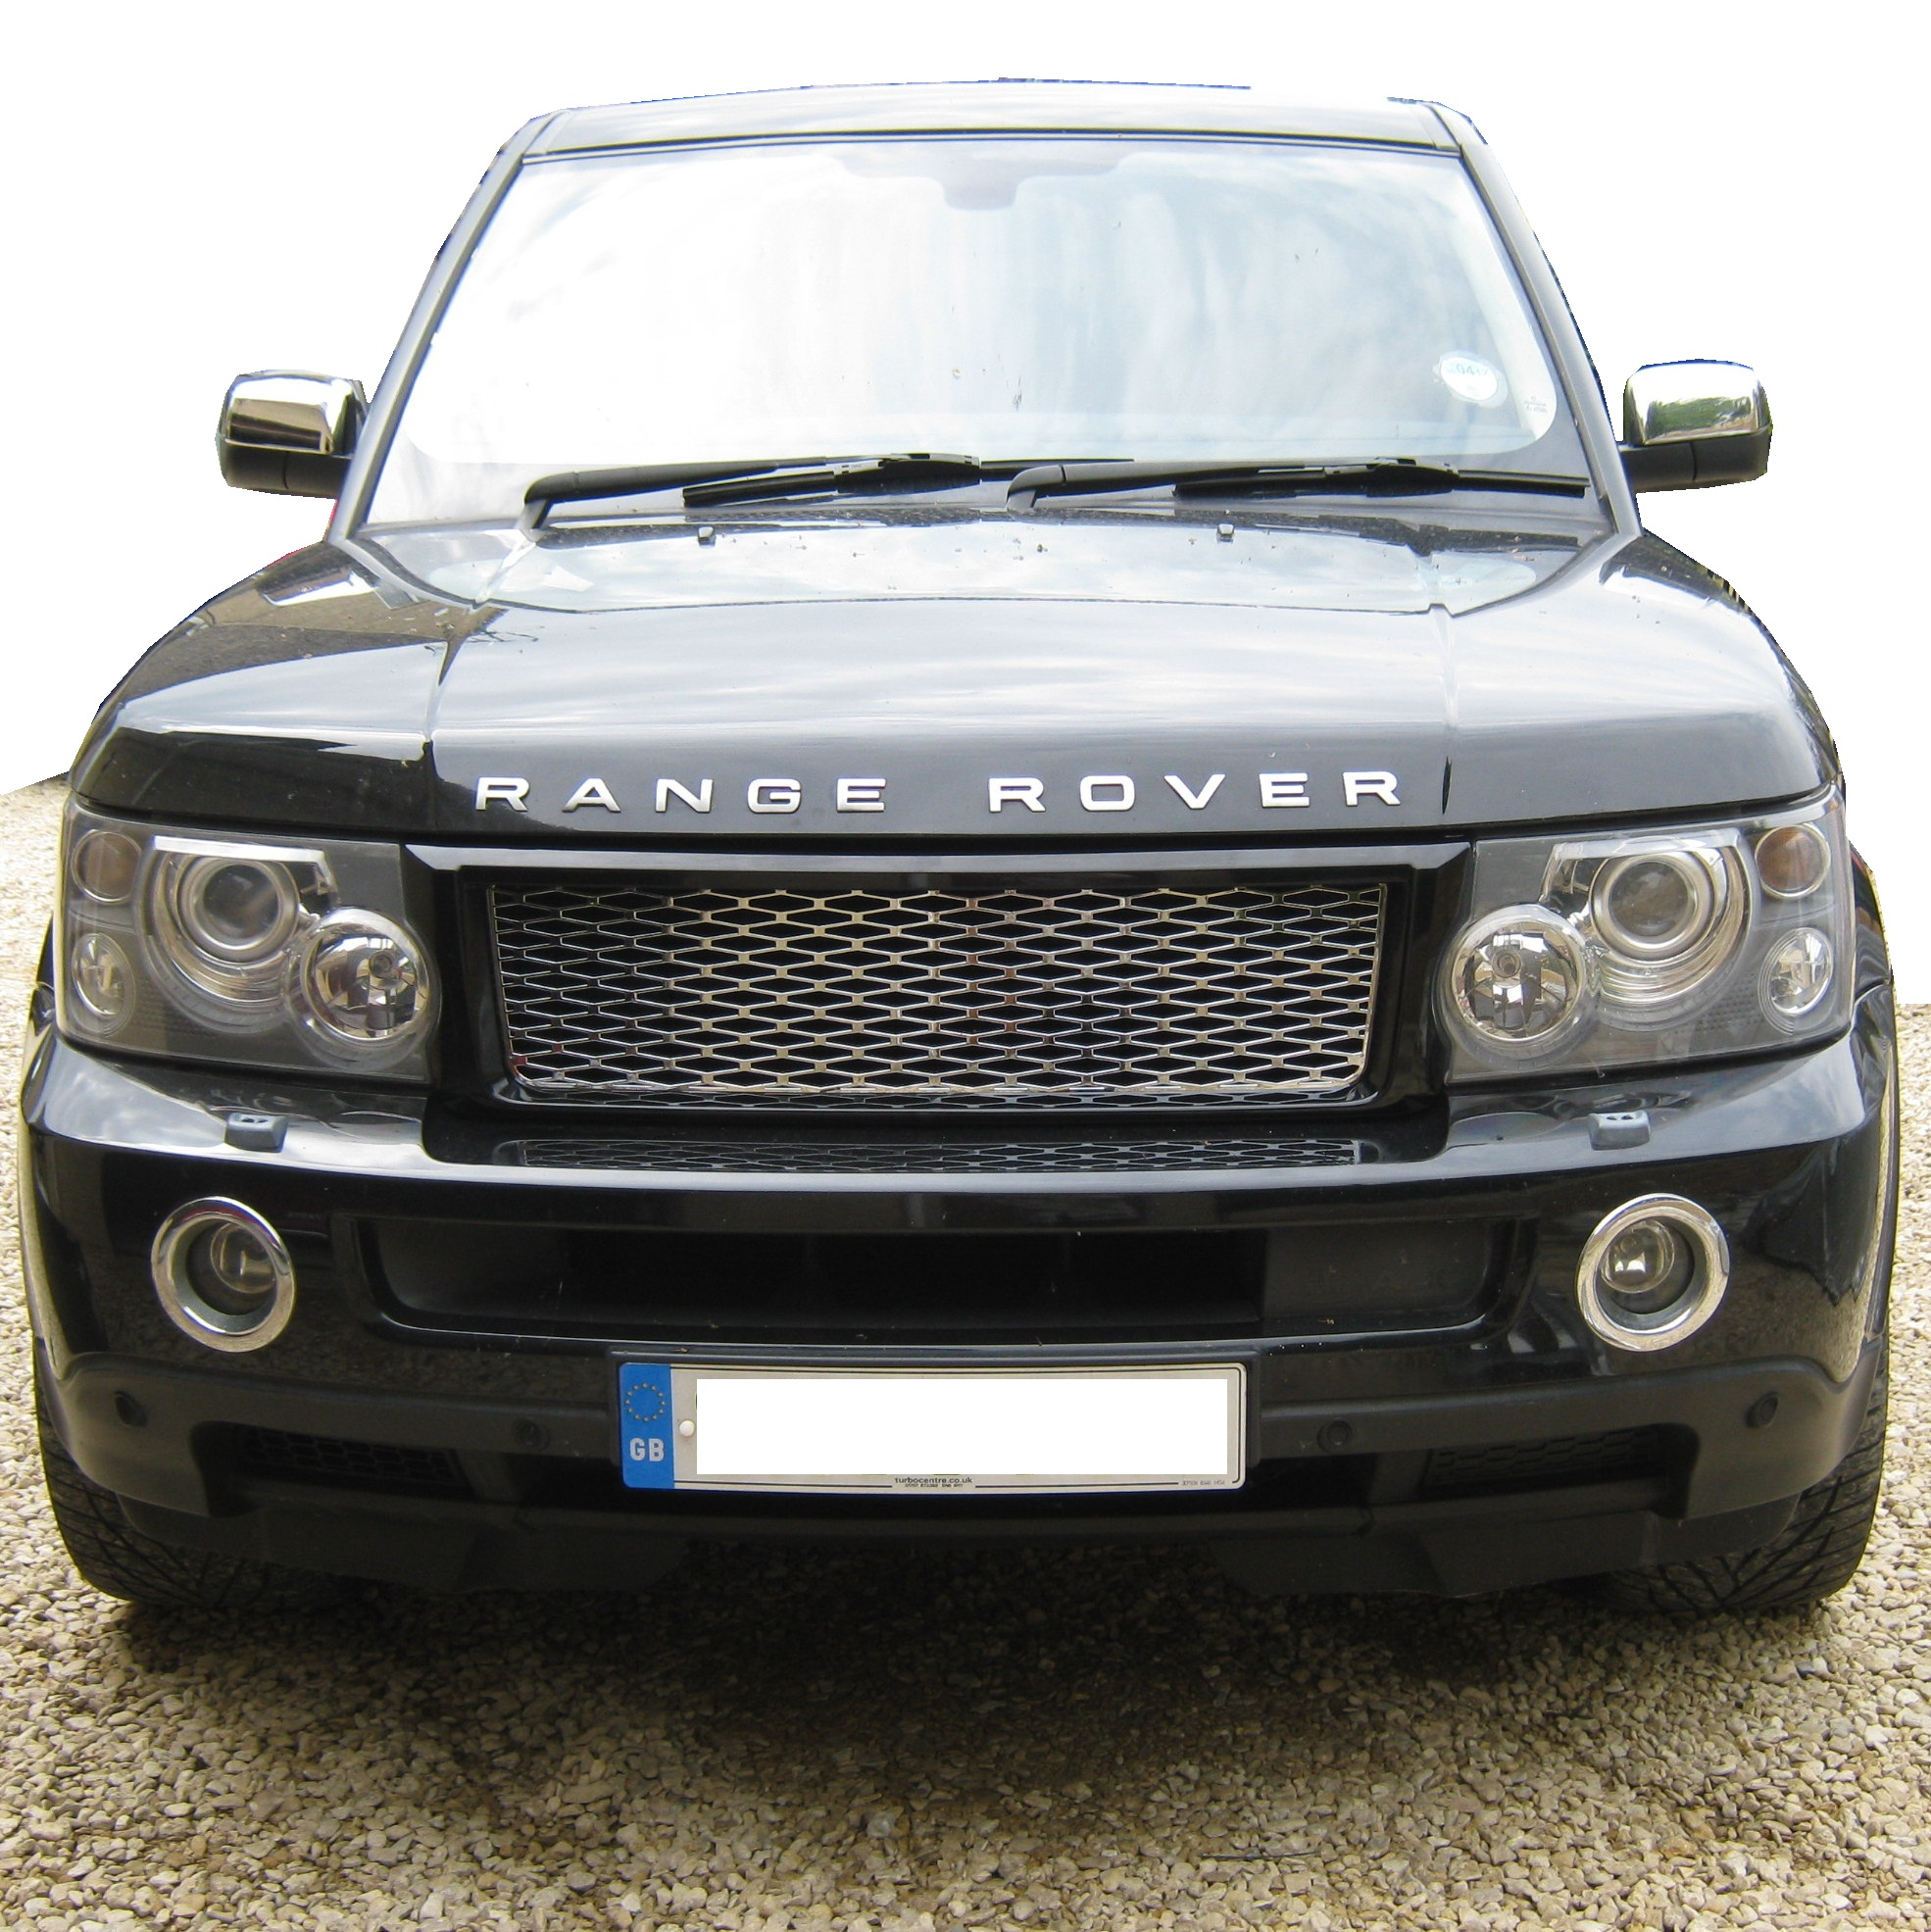 Front Grille Conversion For Range Rover Sport 2005-2009